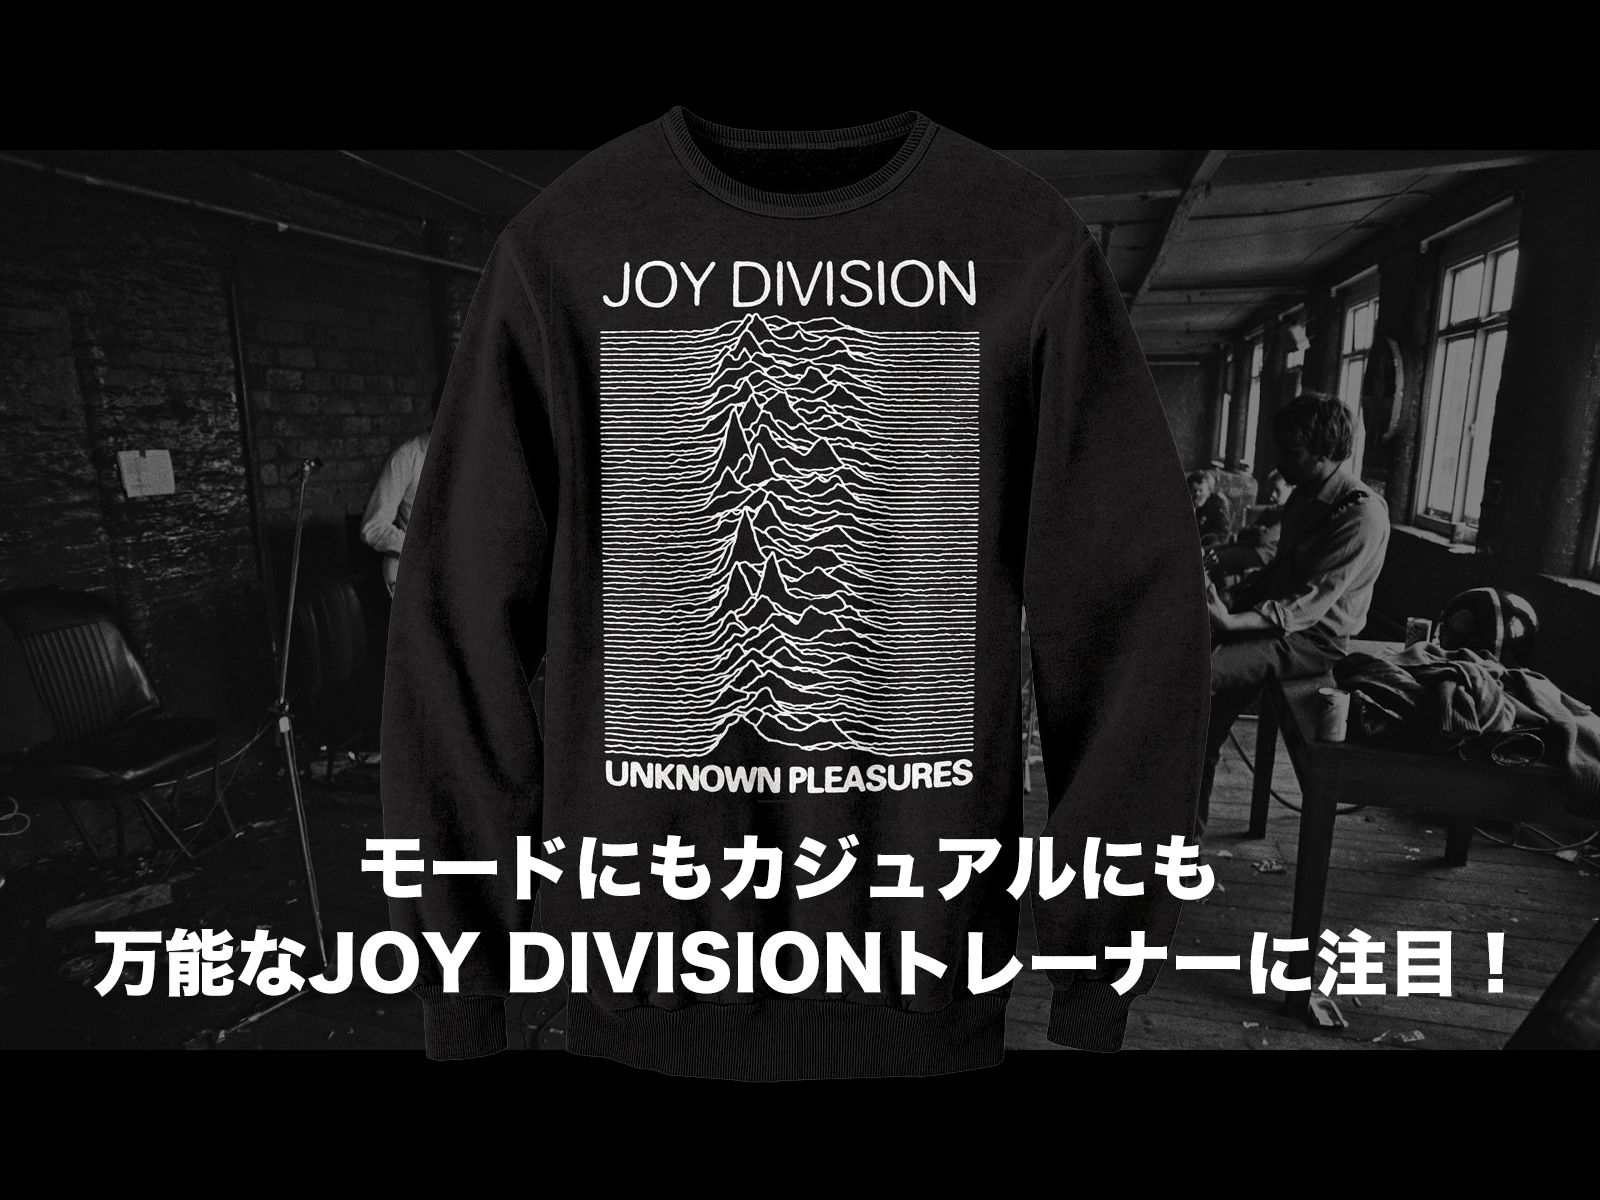 Deadstock Item : JOY DIVISION Sweatshirts